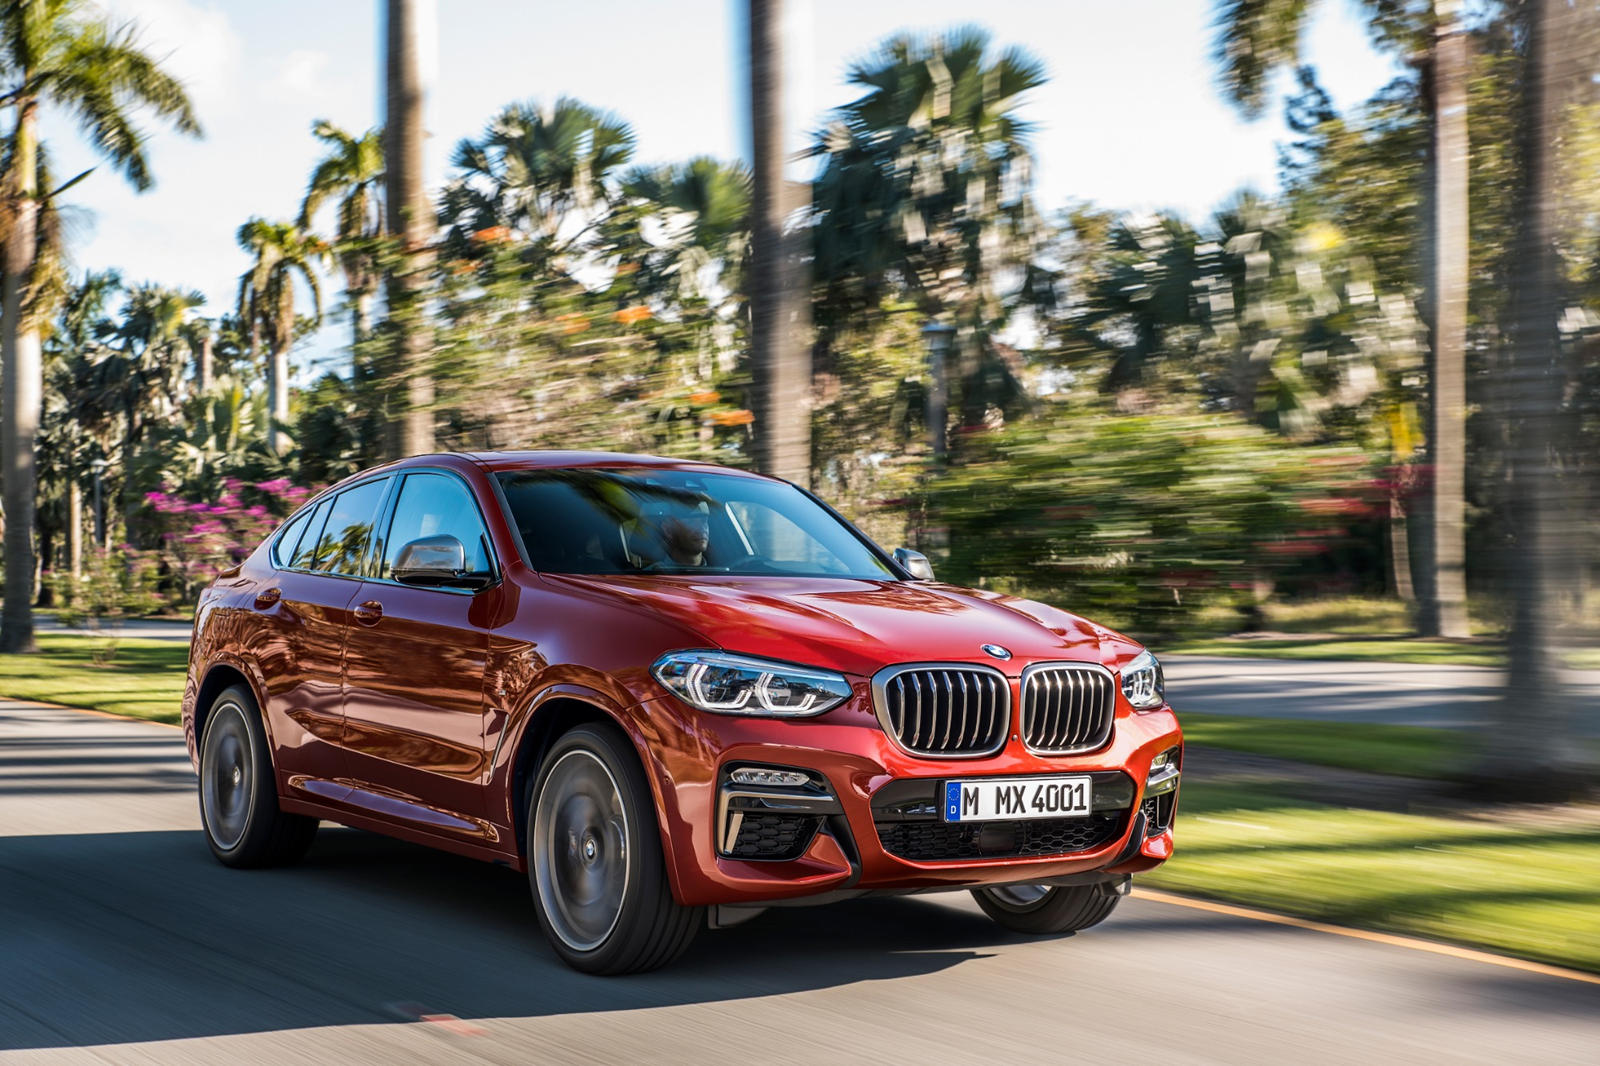 2020 BMW X4 SUV Front View